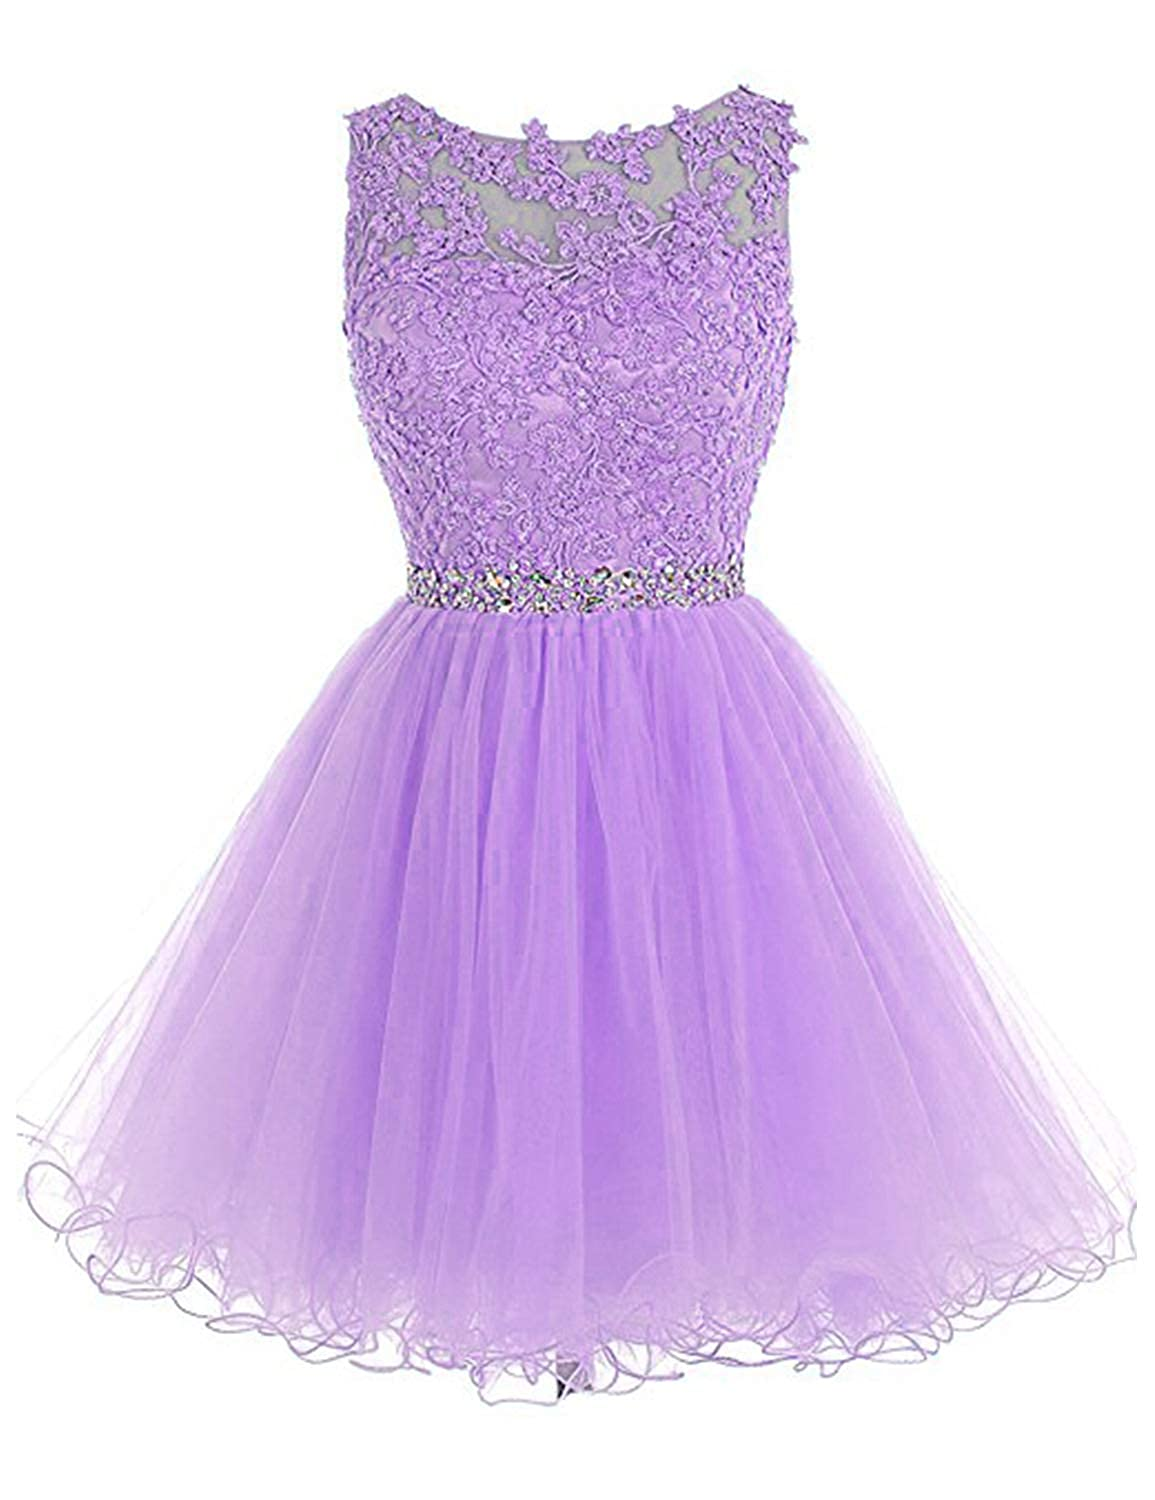 0 Lavender Vimans Women's Short Tulle Homecoming Dresses 2018 Knee Length Lace Prom Gowns Dress448